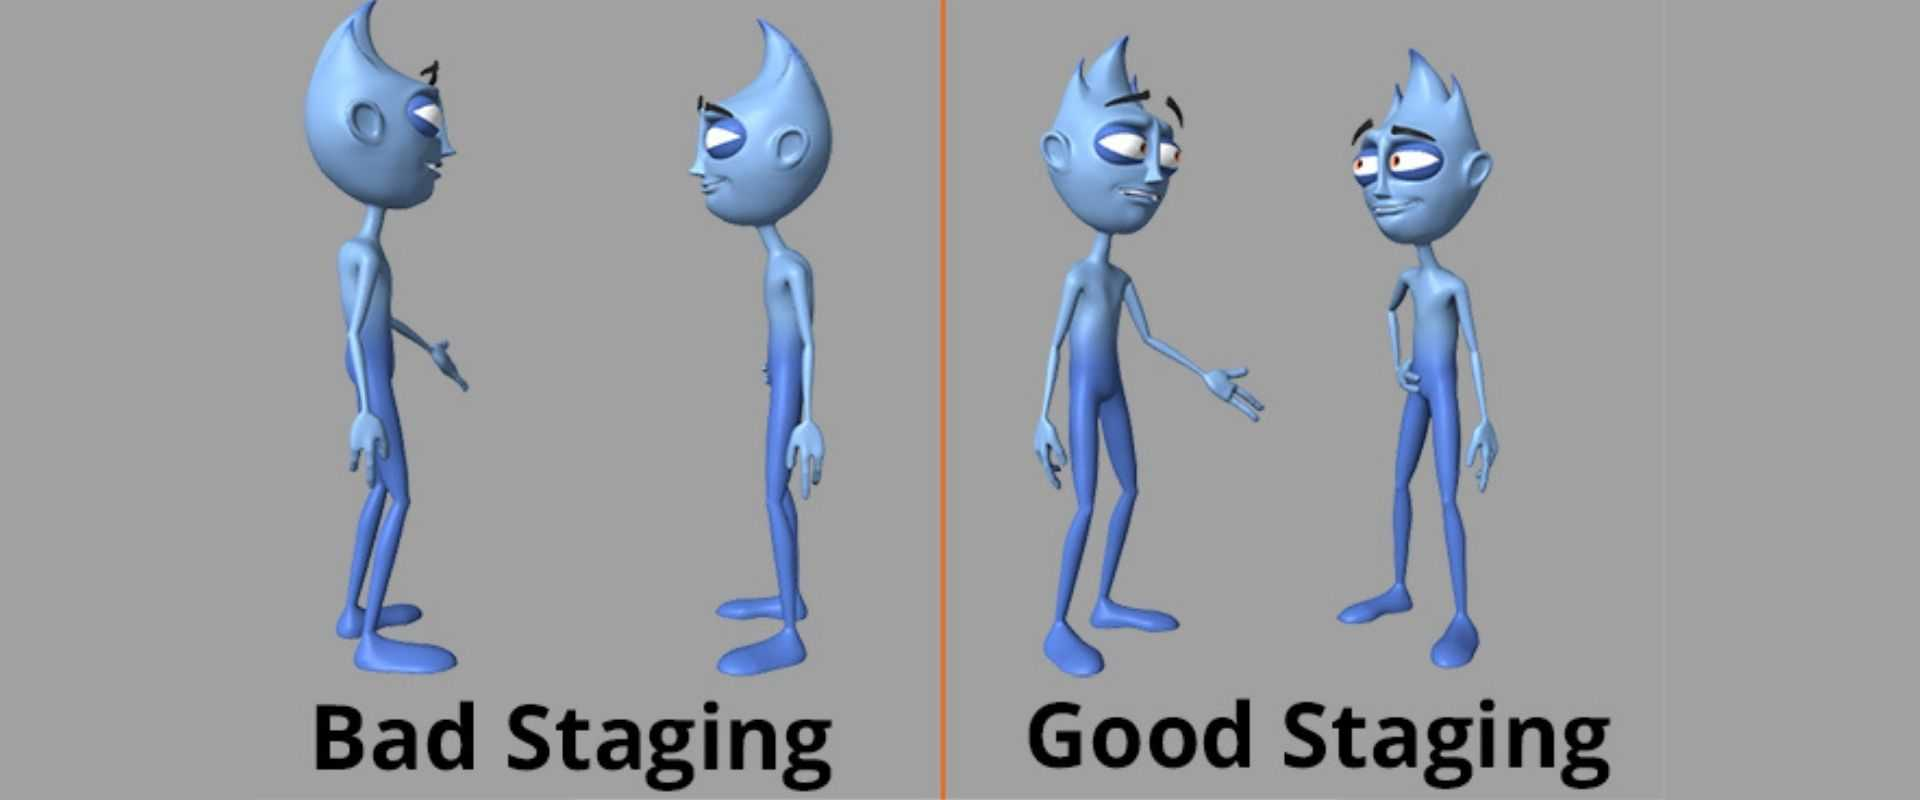 An example of good staging and bad staging